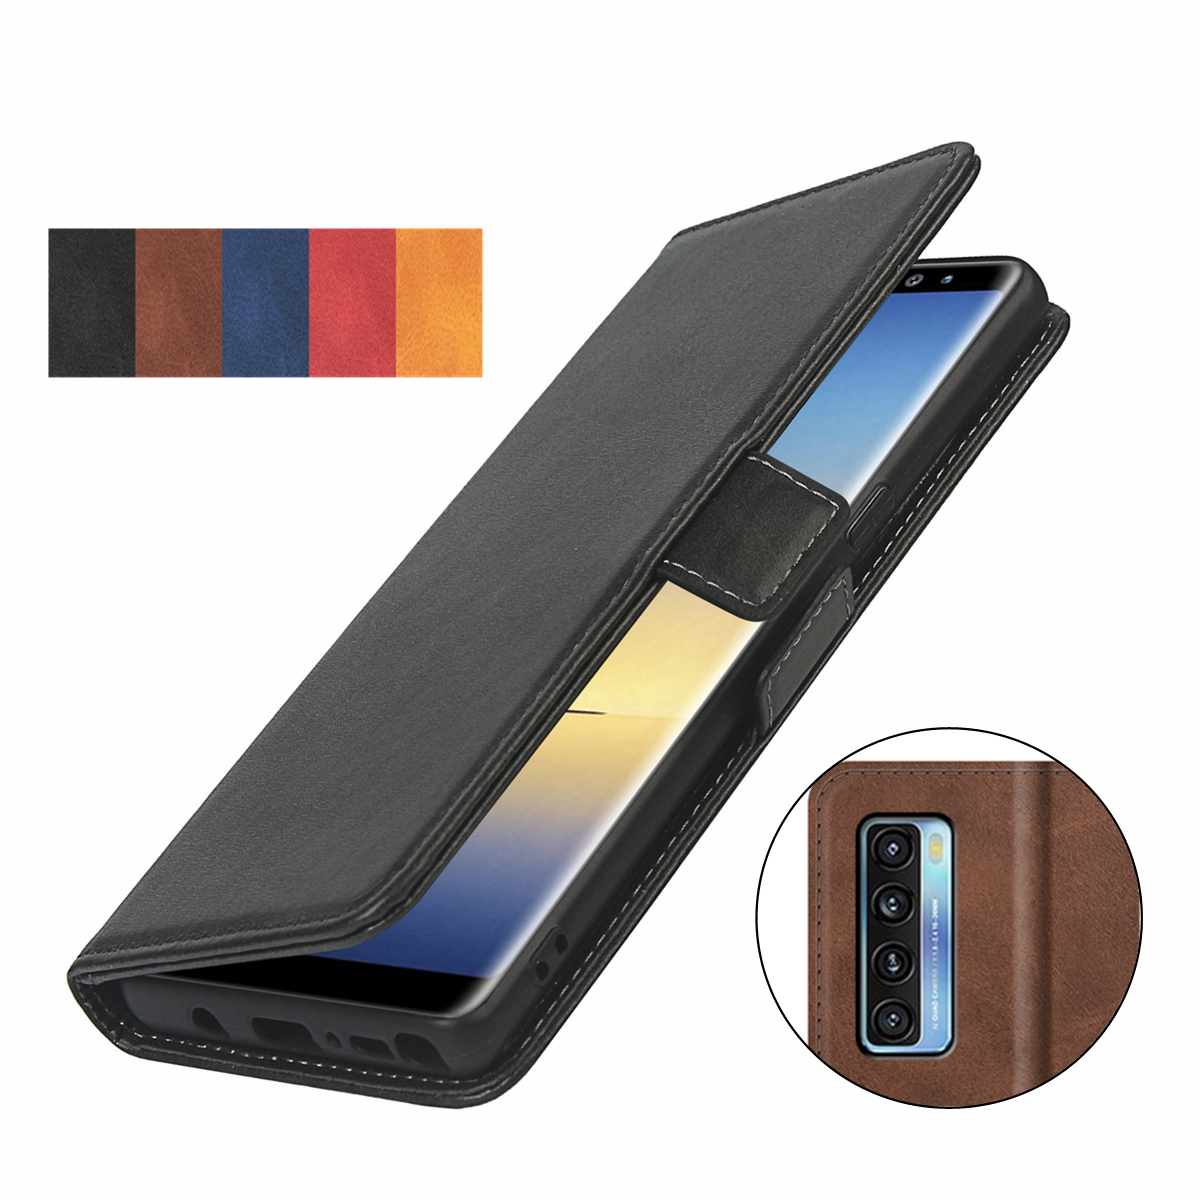 pu leather Fitted Case for TCL 20S/20 5G/20L+ Wallet Cover Short-buckle Flip book holster protective phone bag case GG